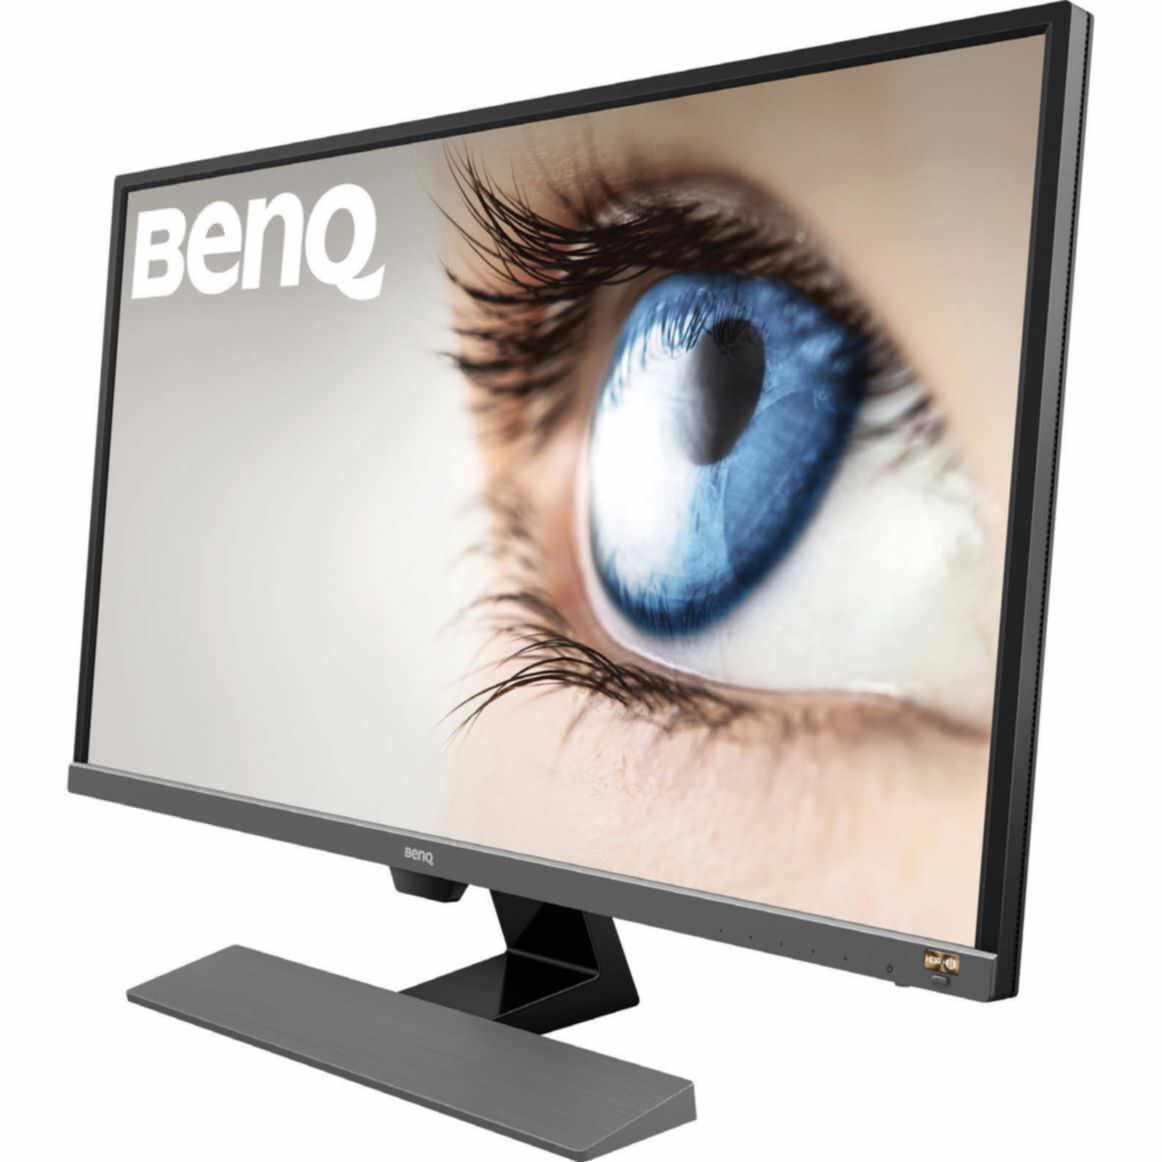 Could It Be One Of The Best And Cheapest 4k UHD Displays?